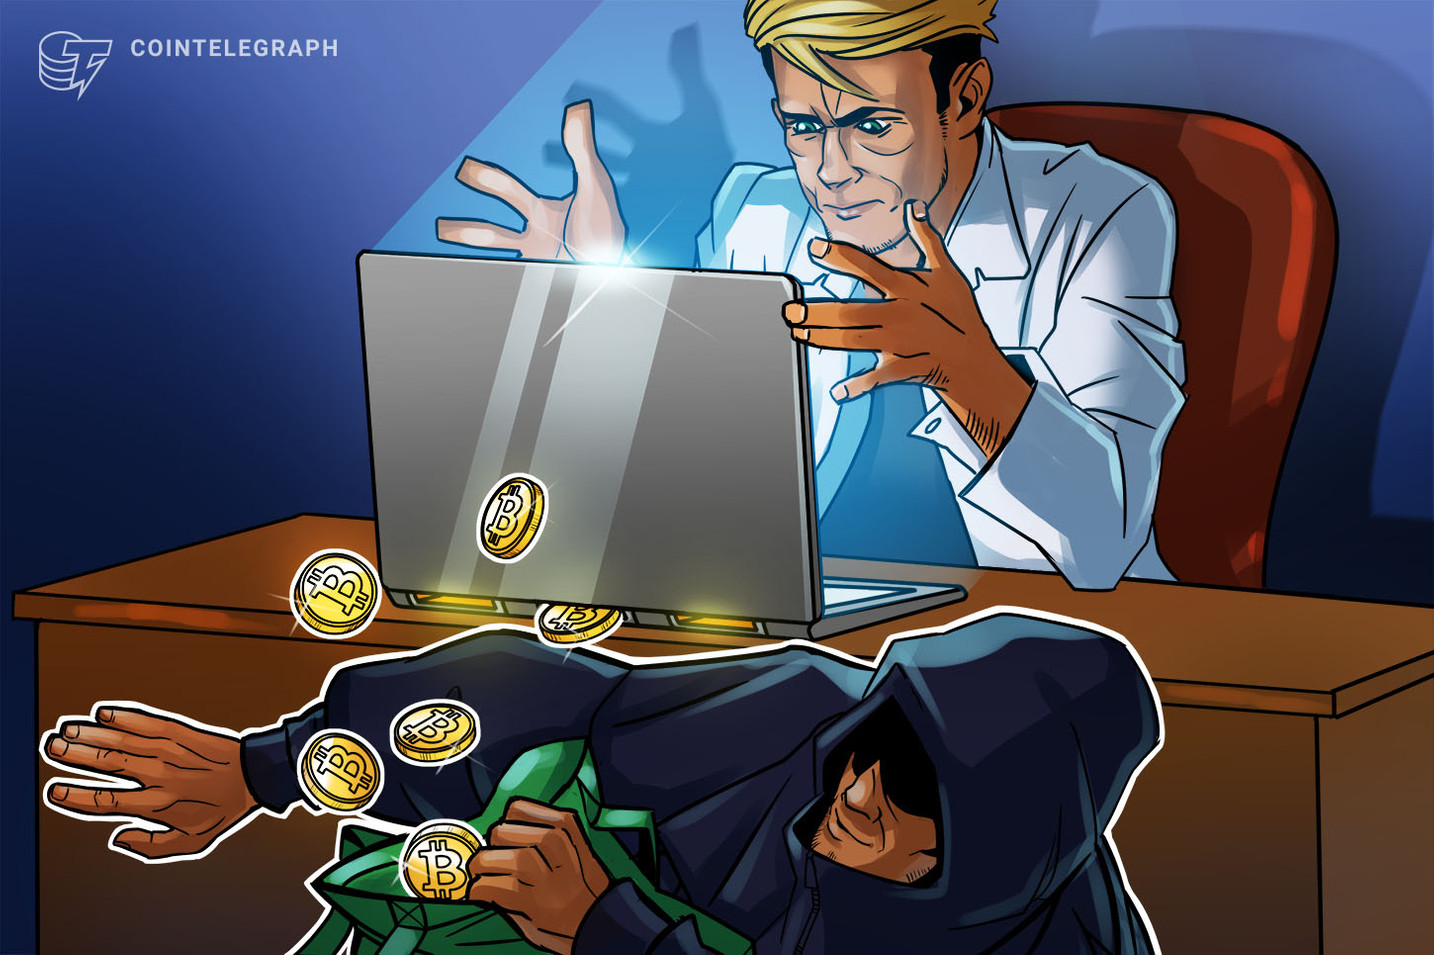 New Email Extortion Scam Targets Google's AdSense, Demands Bitcoin